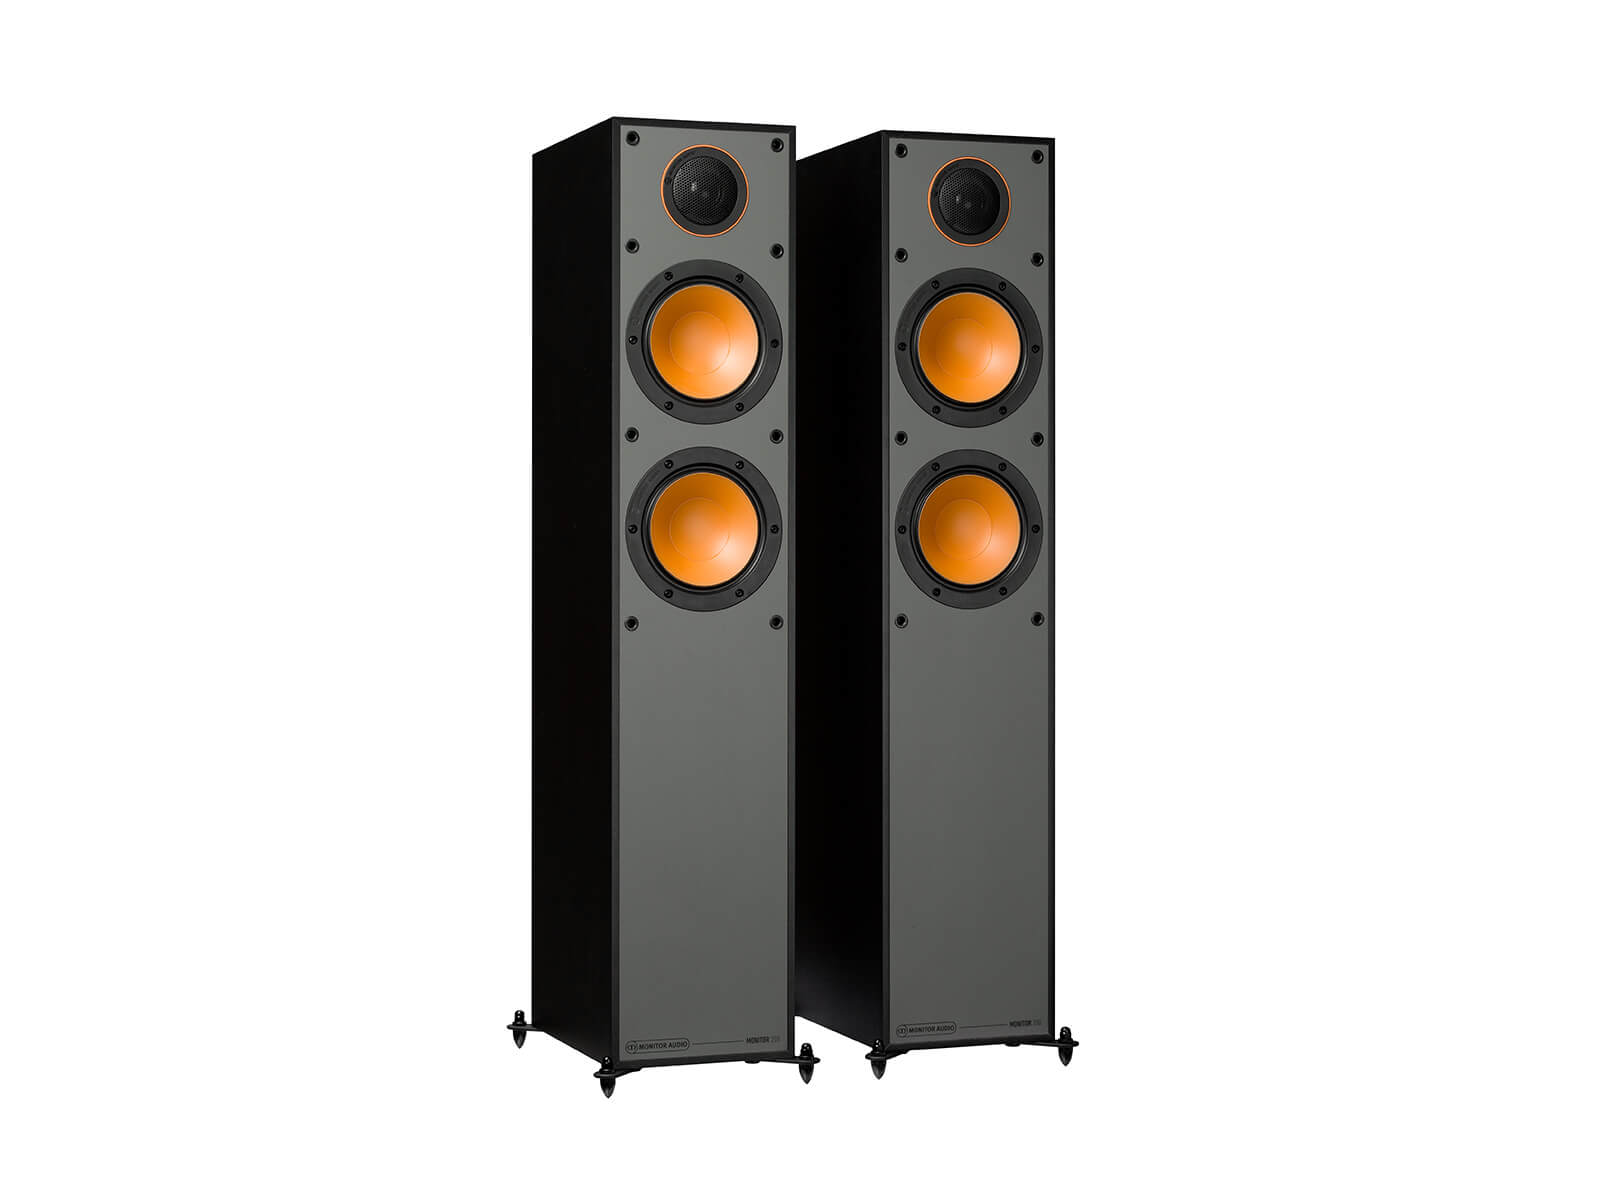 Monitor 200, floorstanding speakers, without grilles in a black finish.